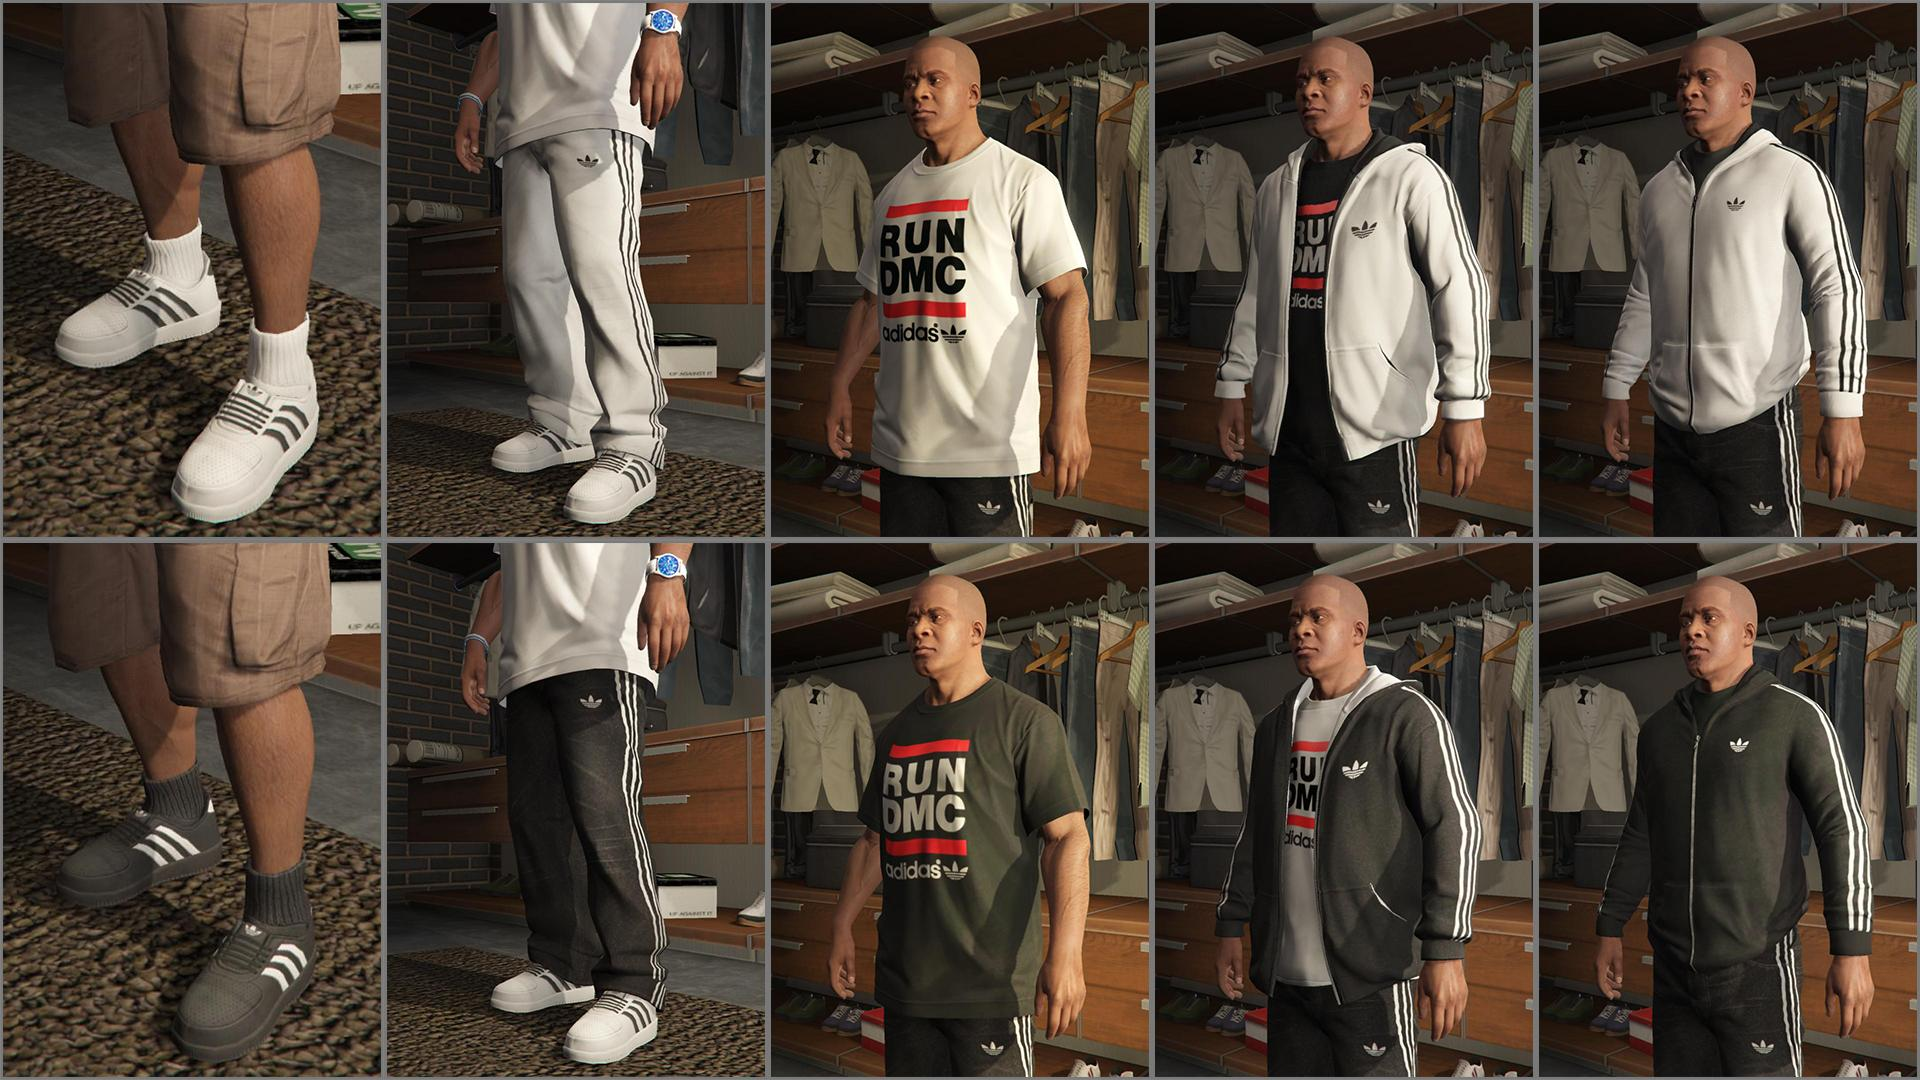 Gta 5 online clothing